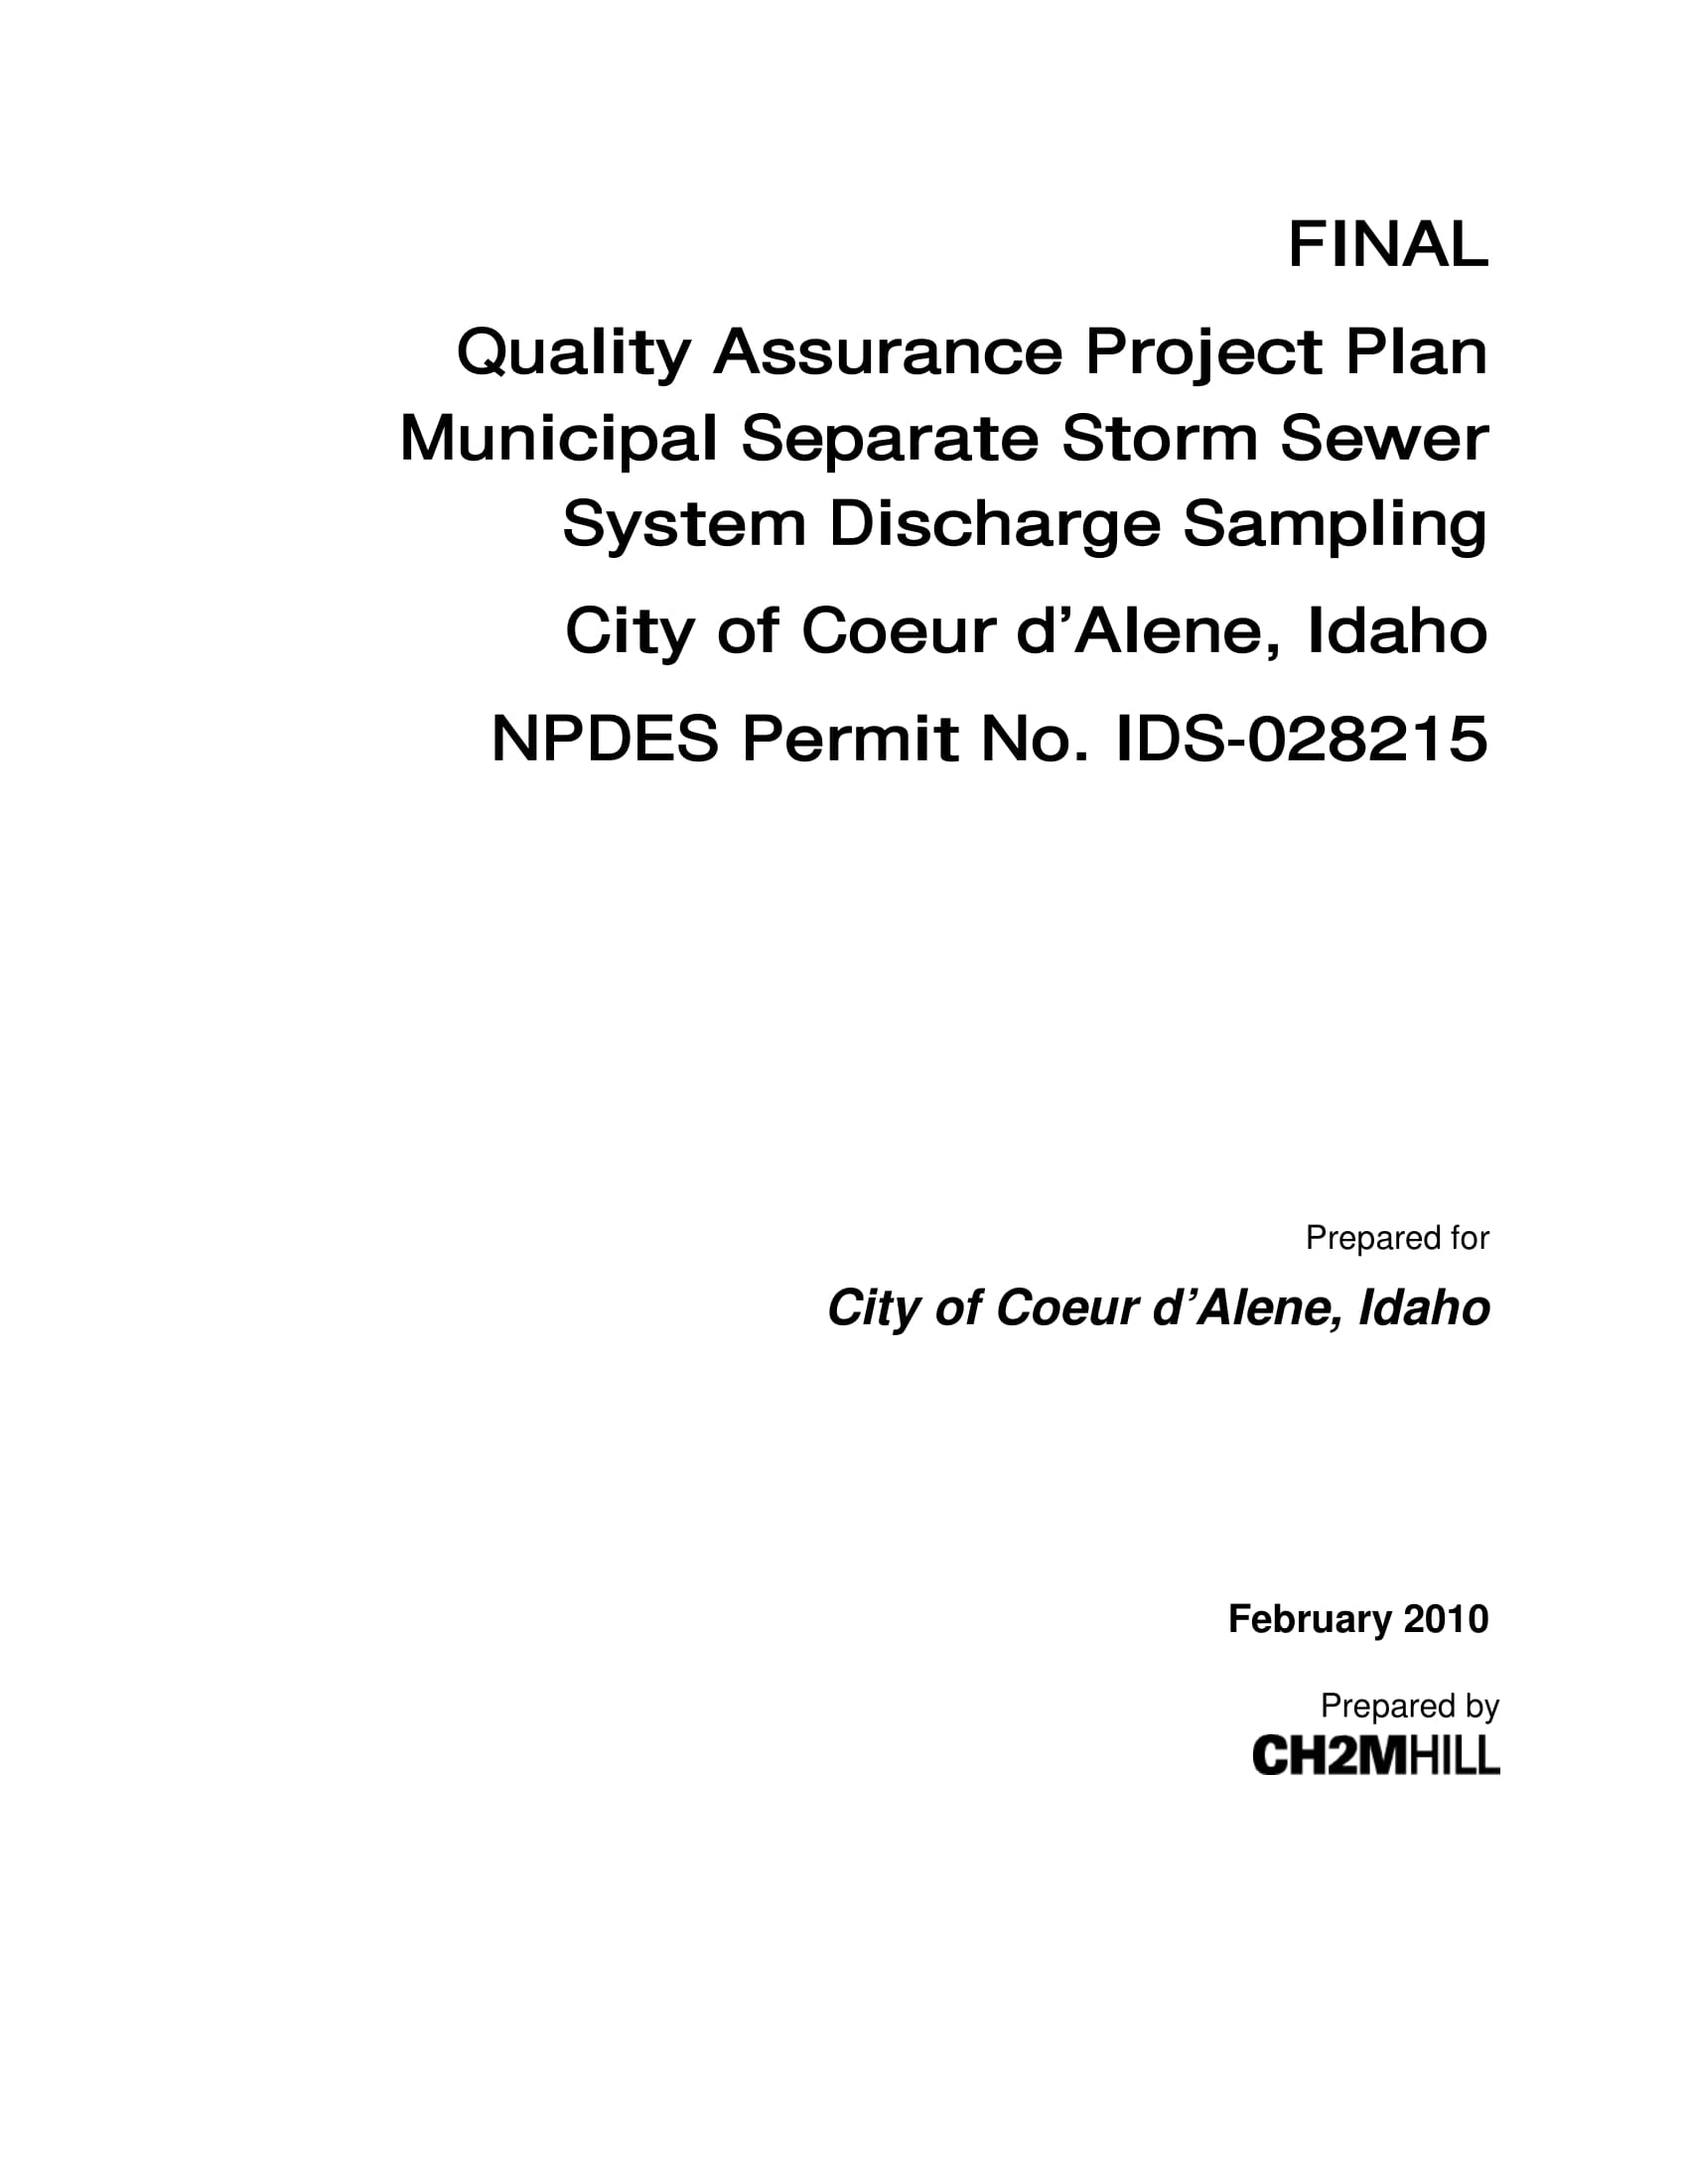 project quality assurance plan example